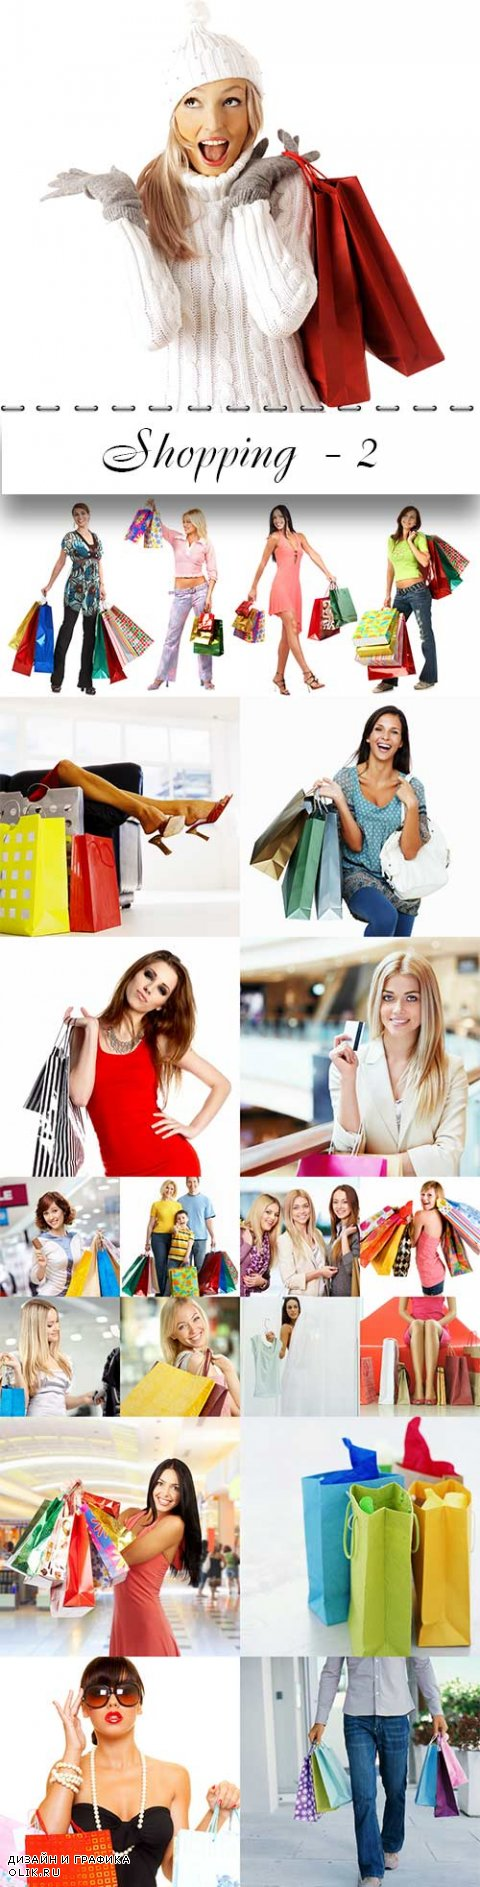 Shopping raster graphics - 2